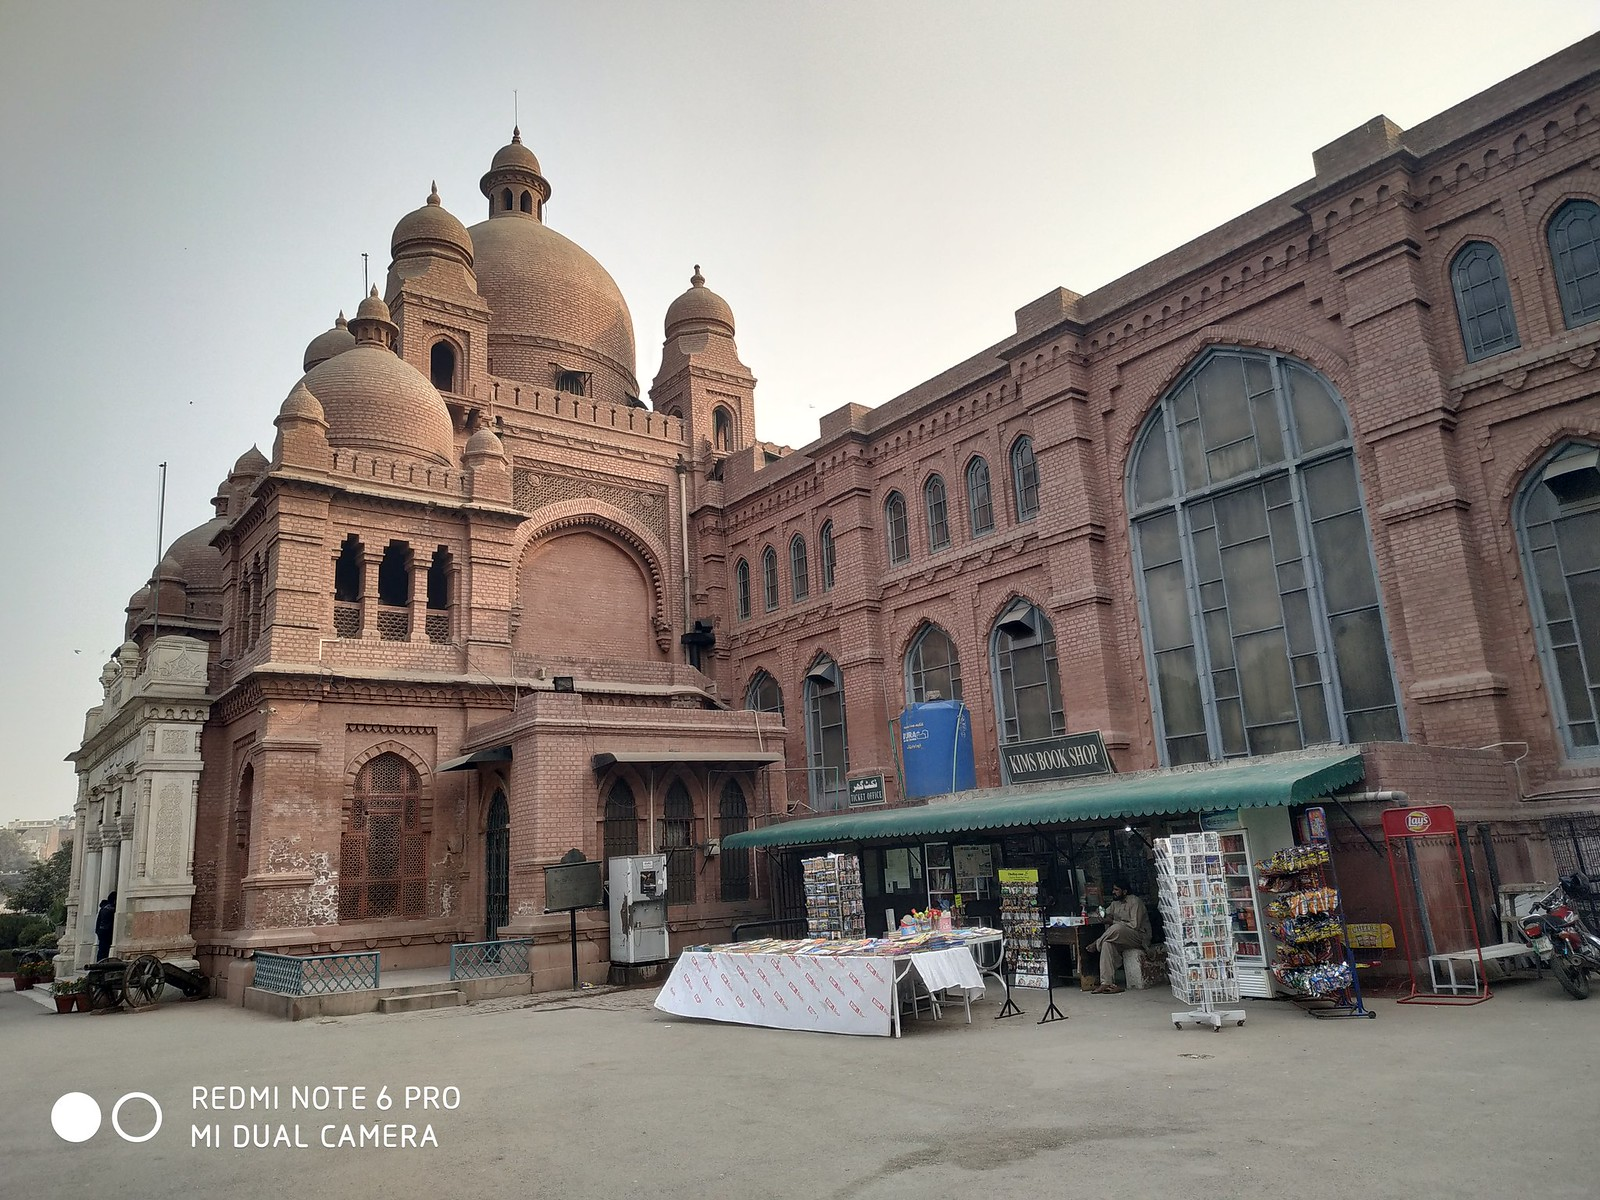 Lahore Museum Picture with HDR mode on Xiaomi Redmi Note 6 pro